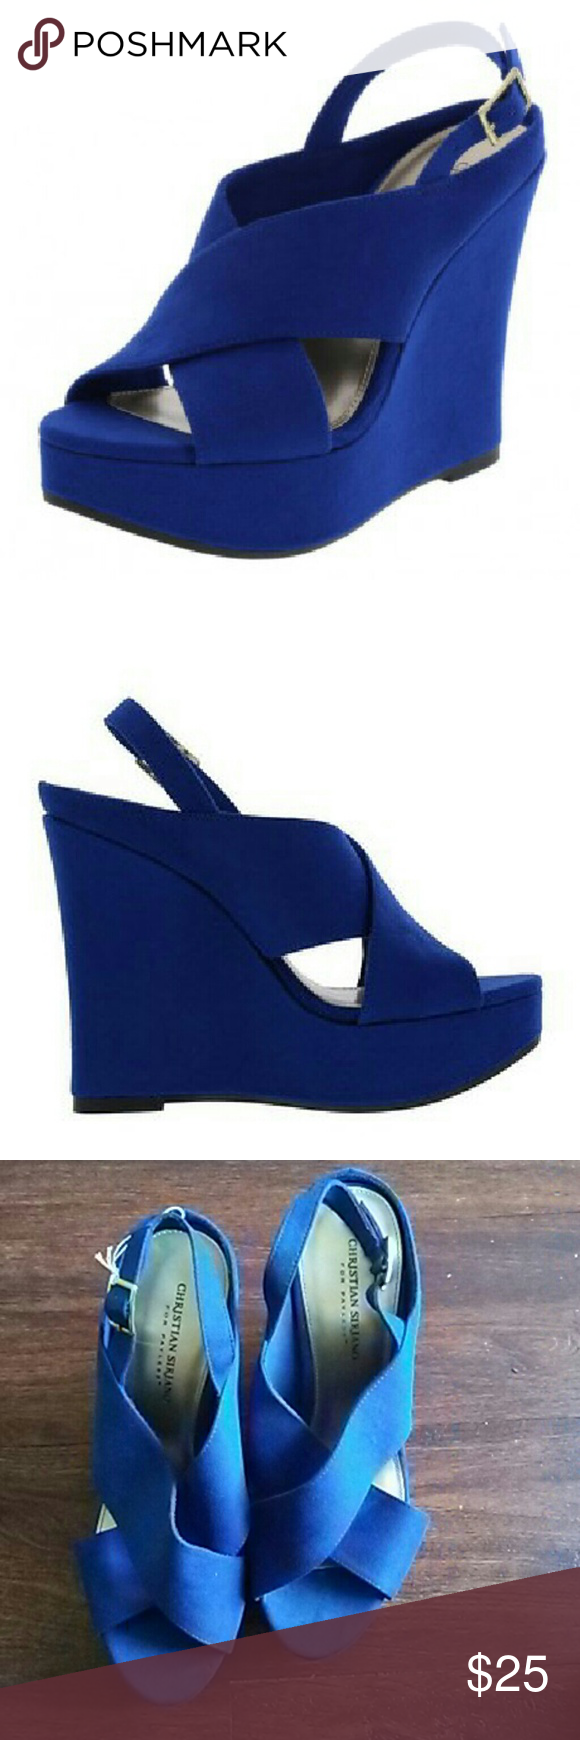 Christian Siriano Wedges- Size 11